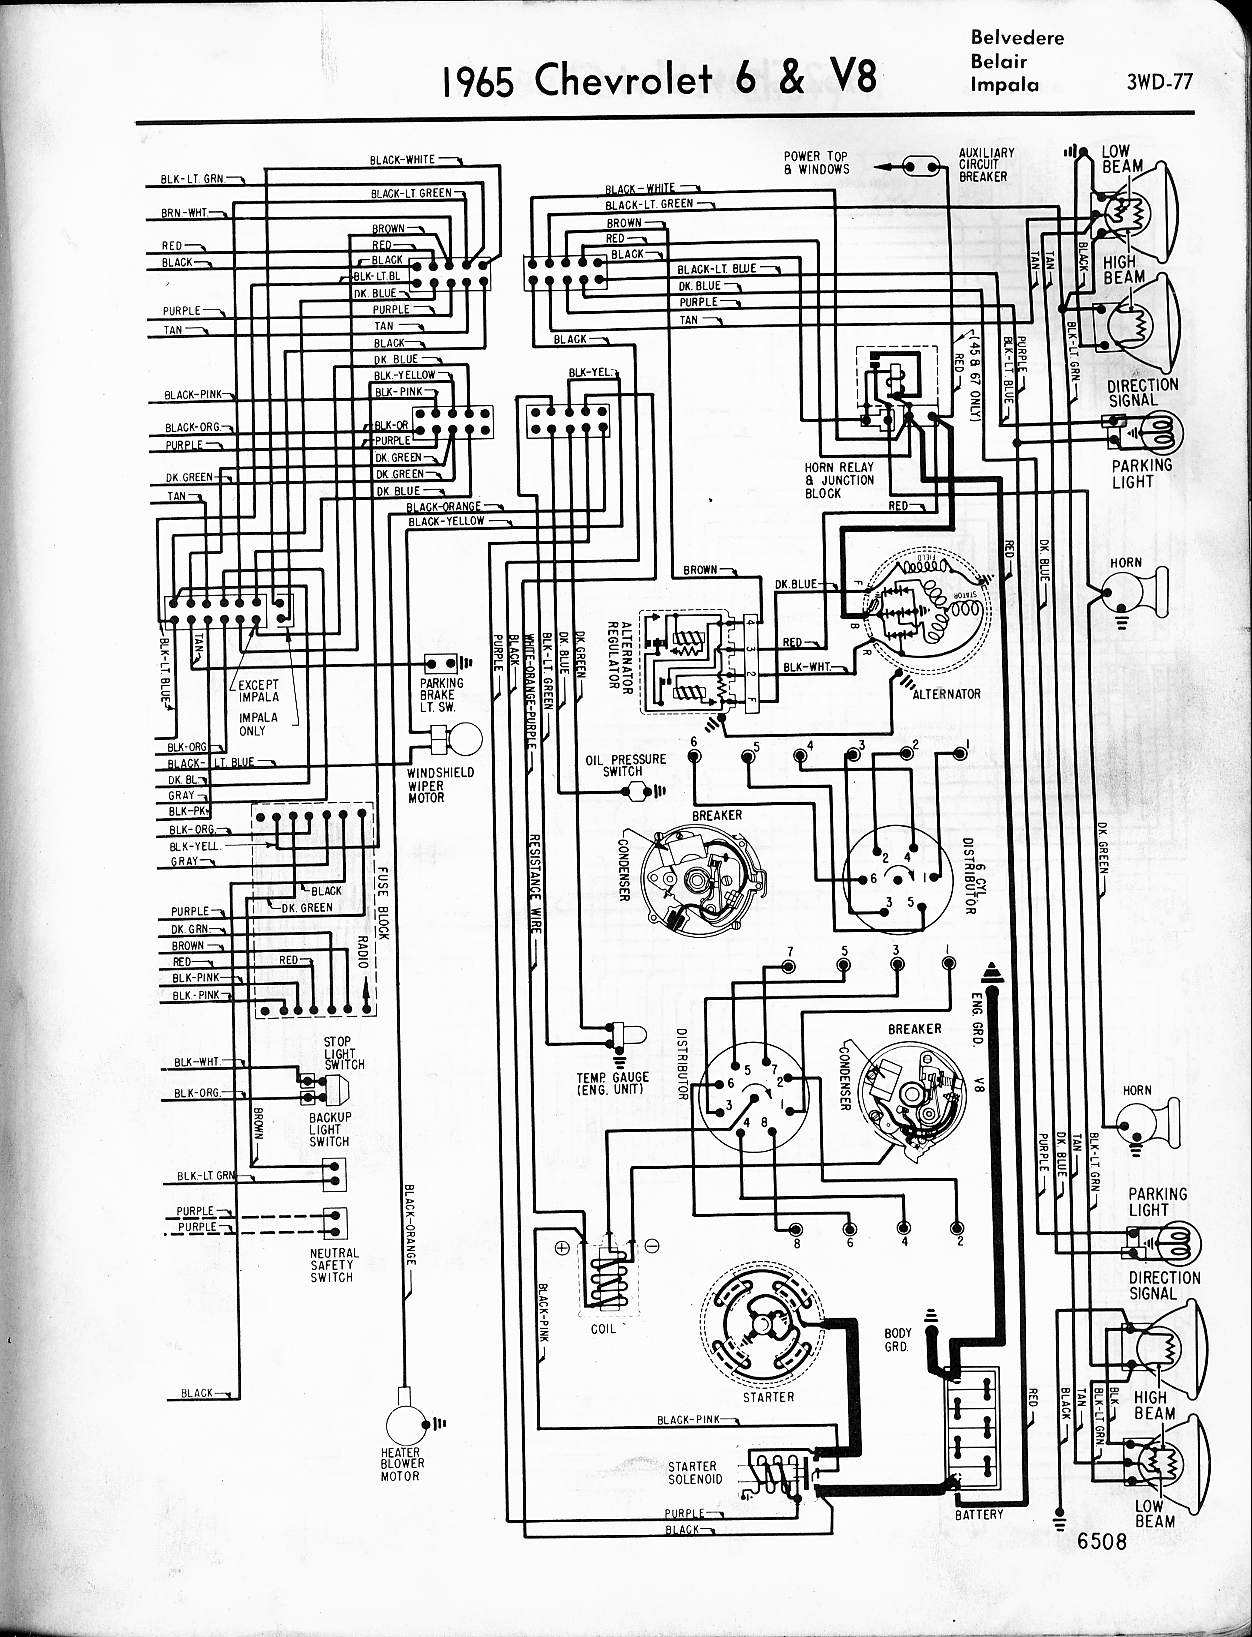 1965 chevy chevelle wiring diagram zxlmvgs chevy truck underhood wiring diagrams chuck's chevy truck pages 1964 chevy truck wiring diagram at suagrazia.org